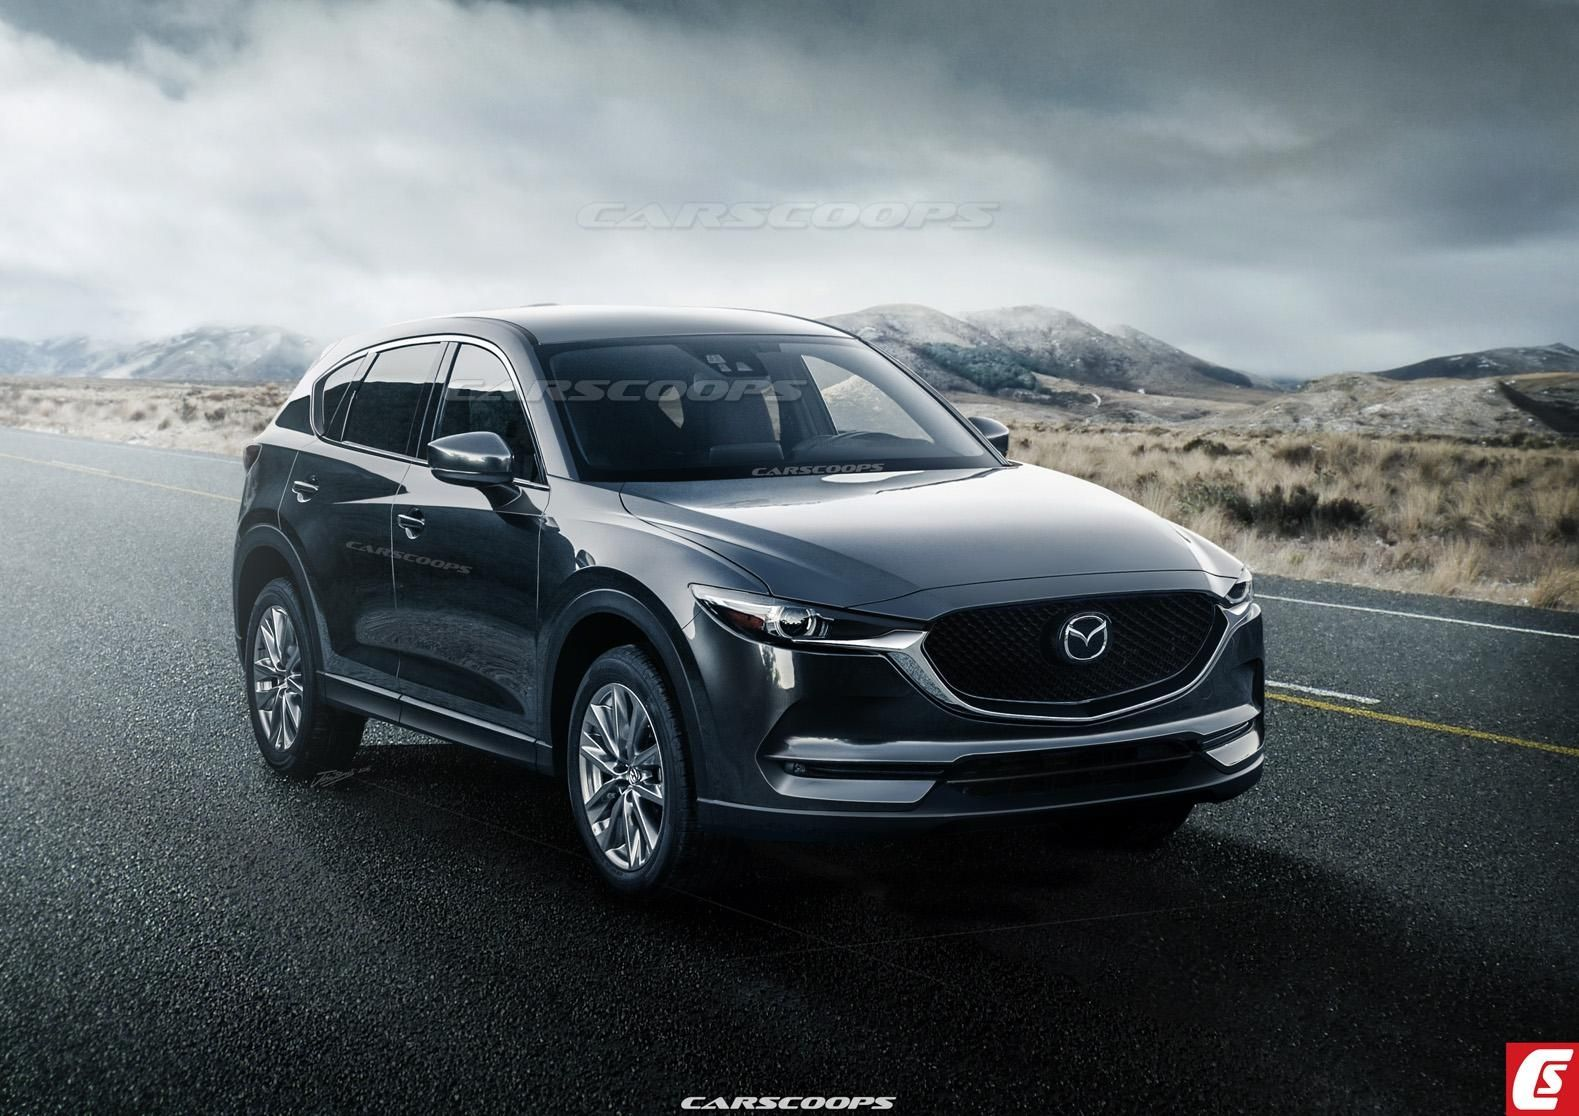 Future Cars New 2018 Mazda Cx 5 Will Come With A Sharper Kodo Intended For Models